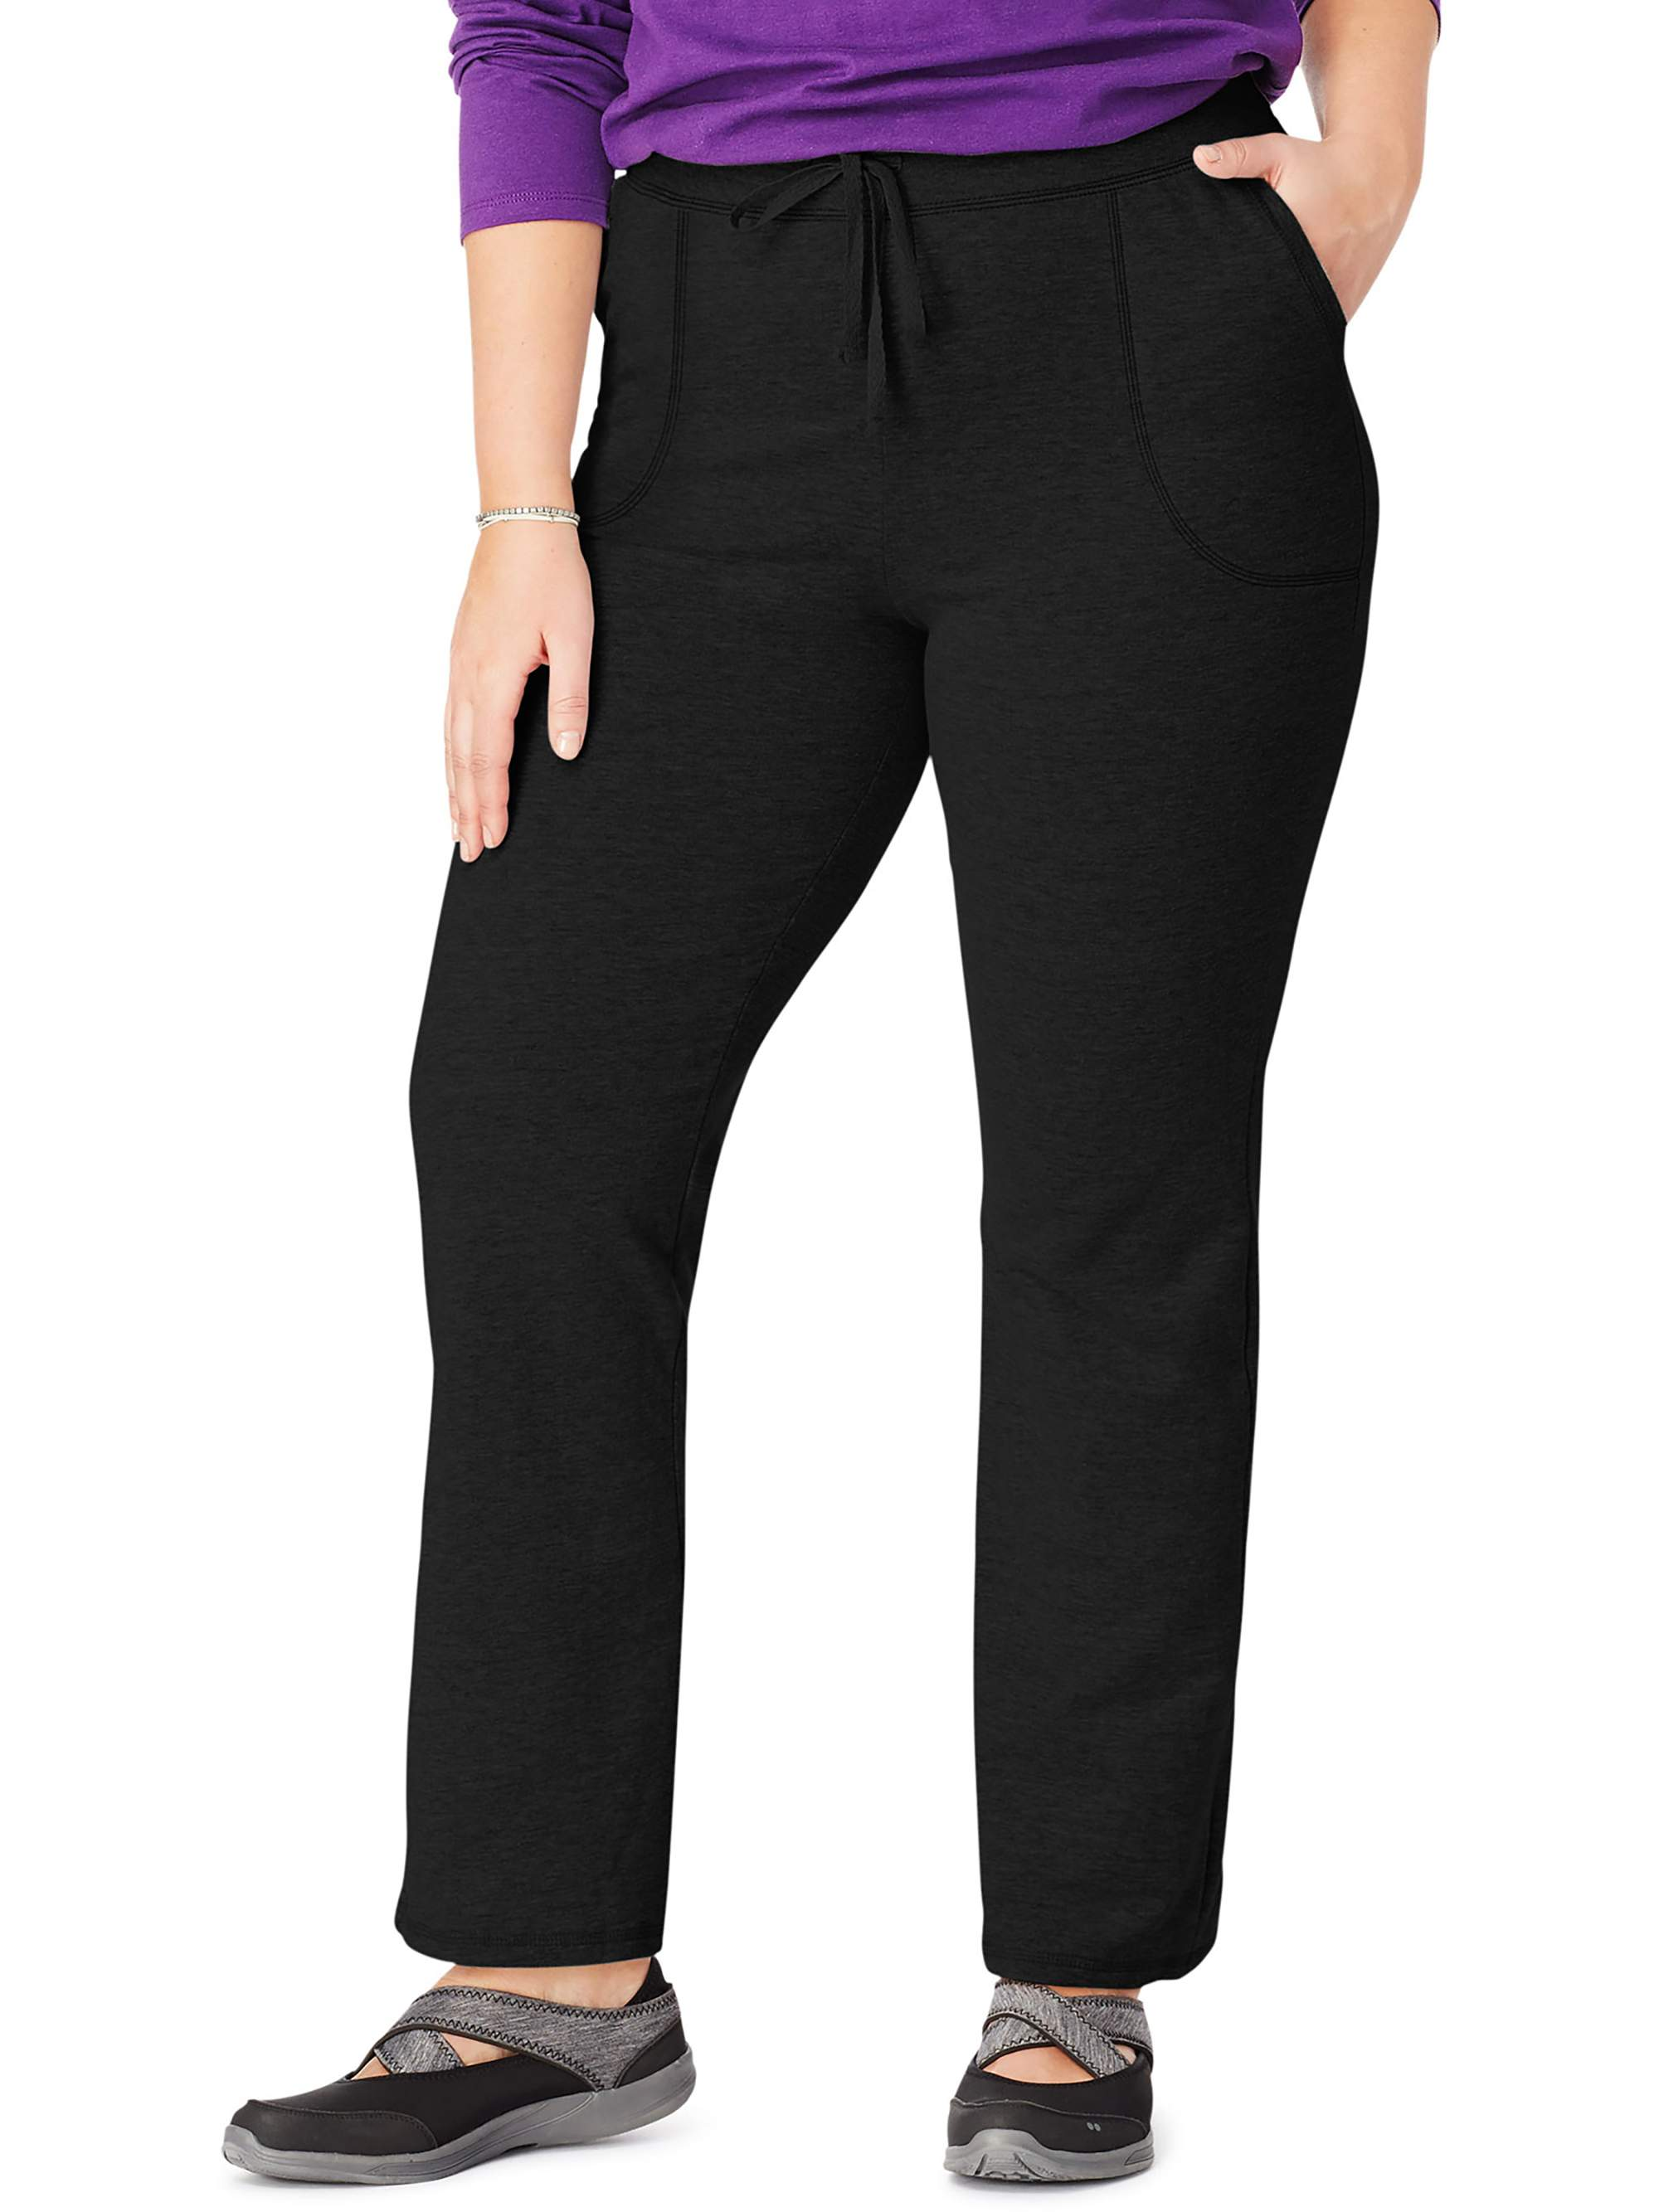 Women's Plus-Size French Terry Pocket Pant